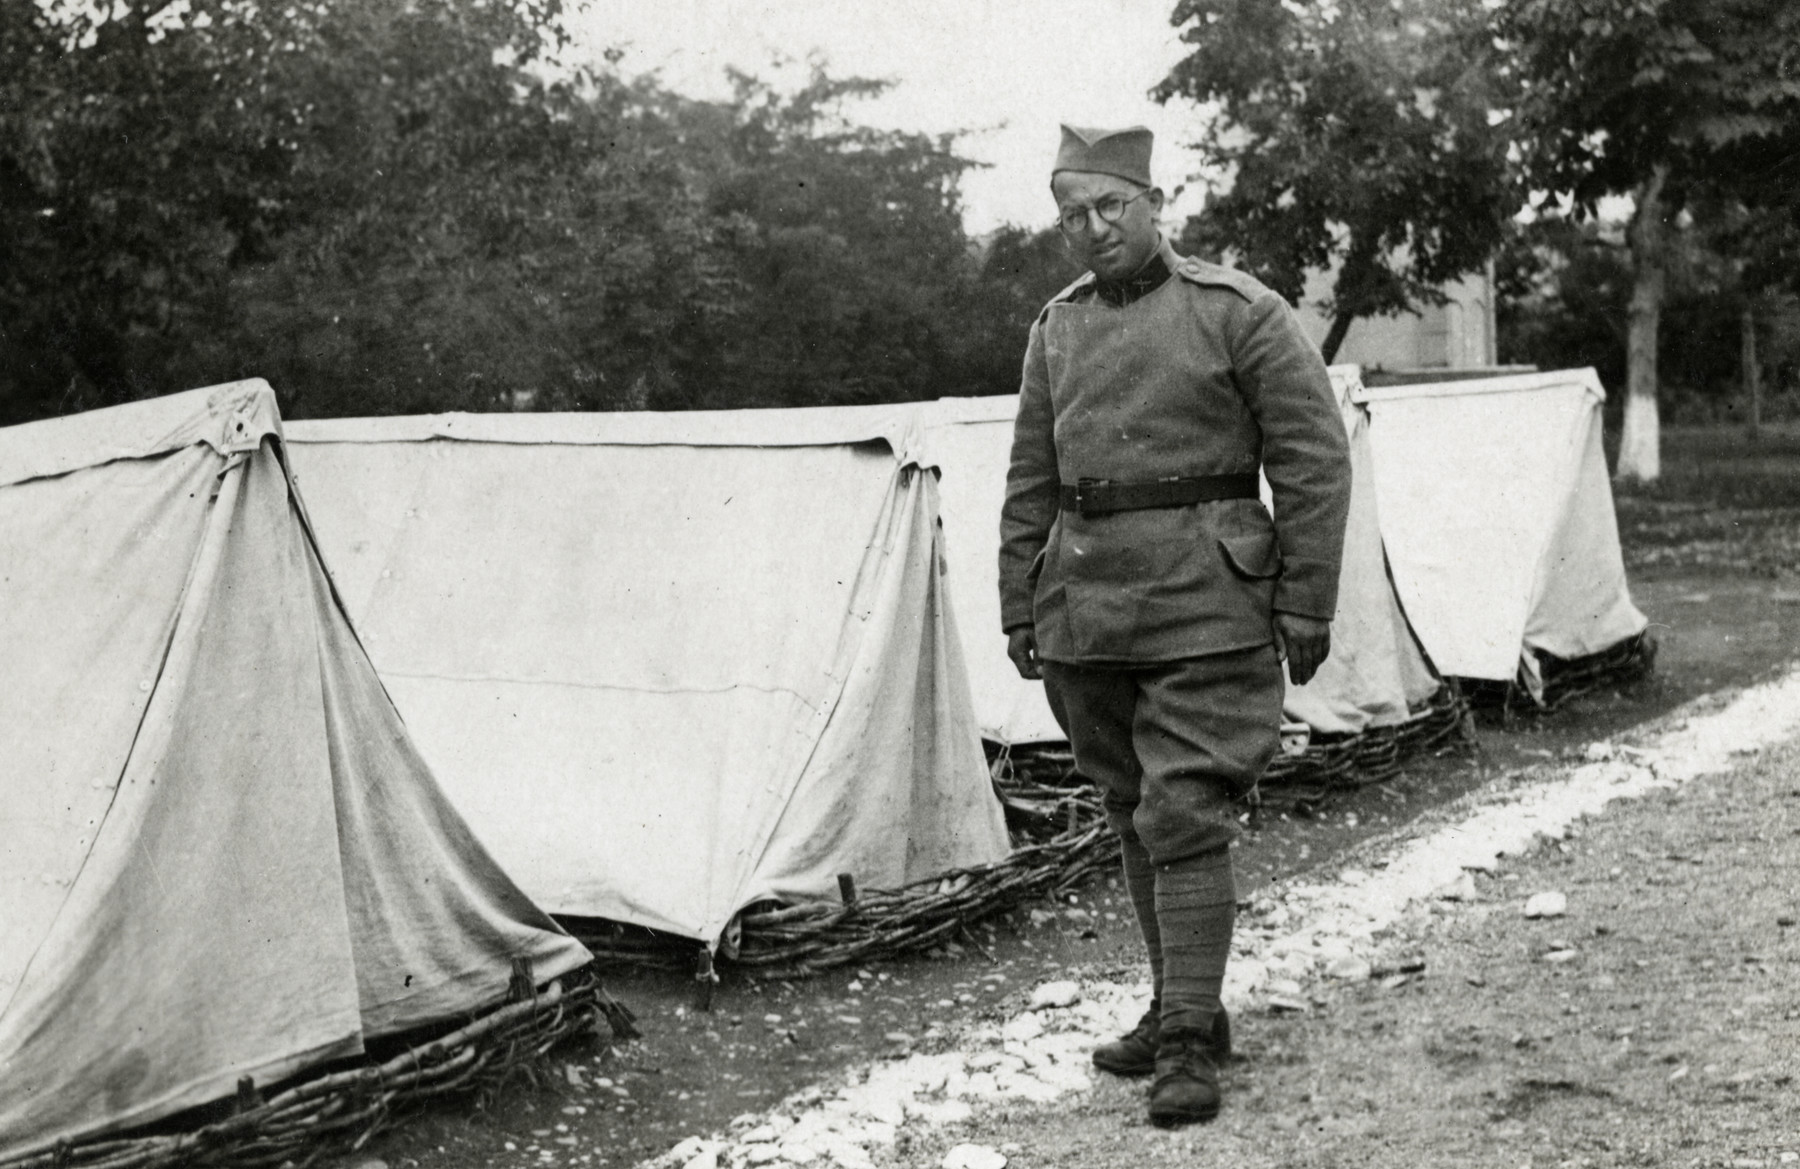 Moise Cassorla (father of the donor) poses in front of a row of tents, in an army uniform.